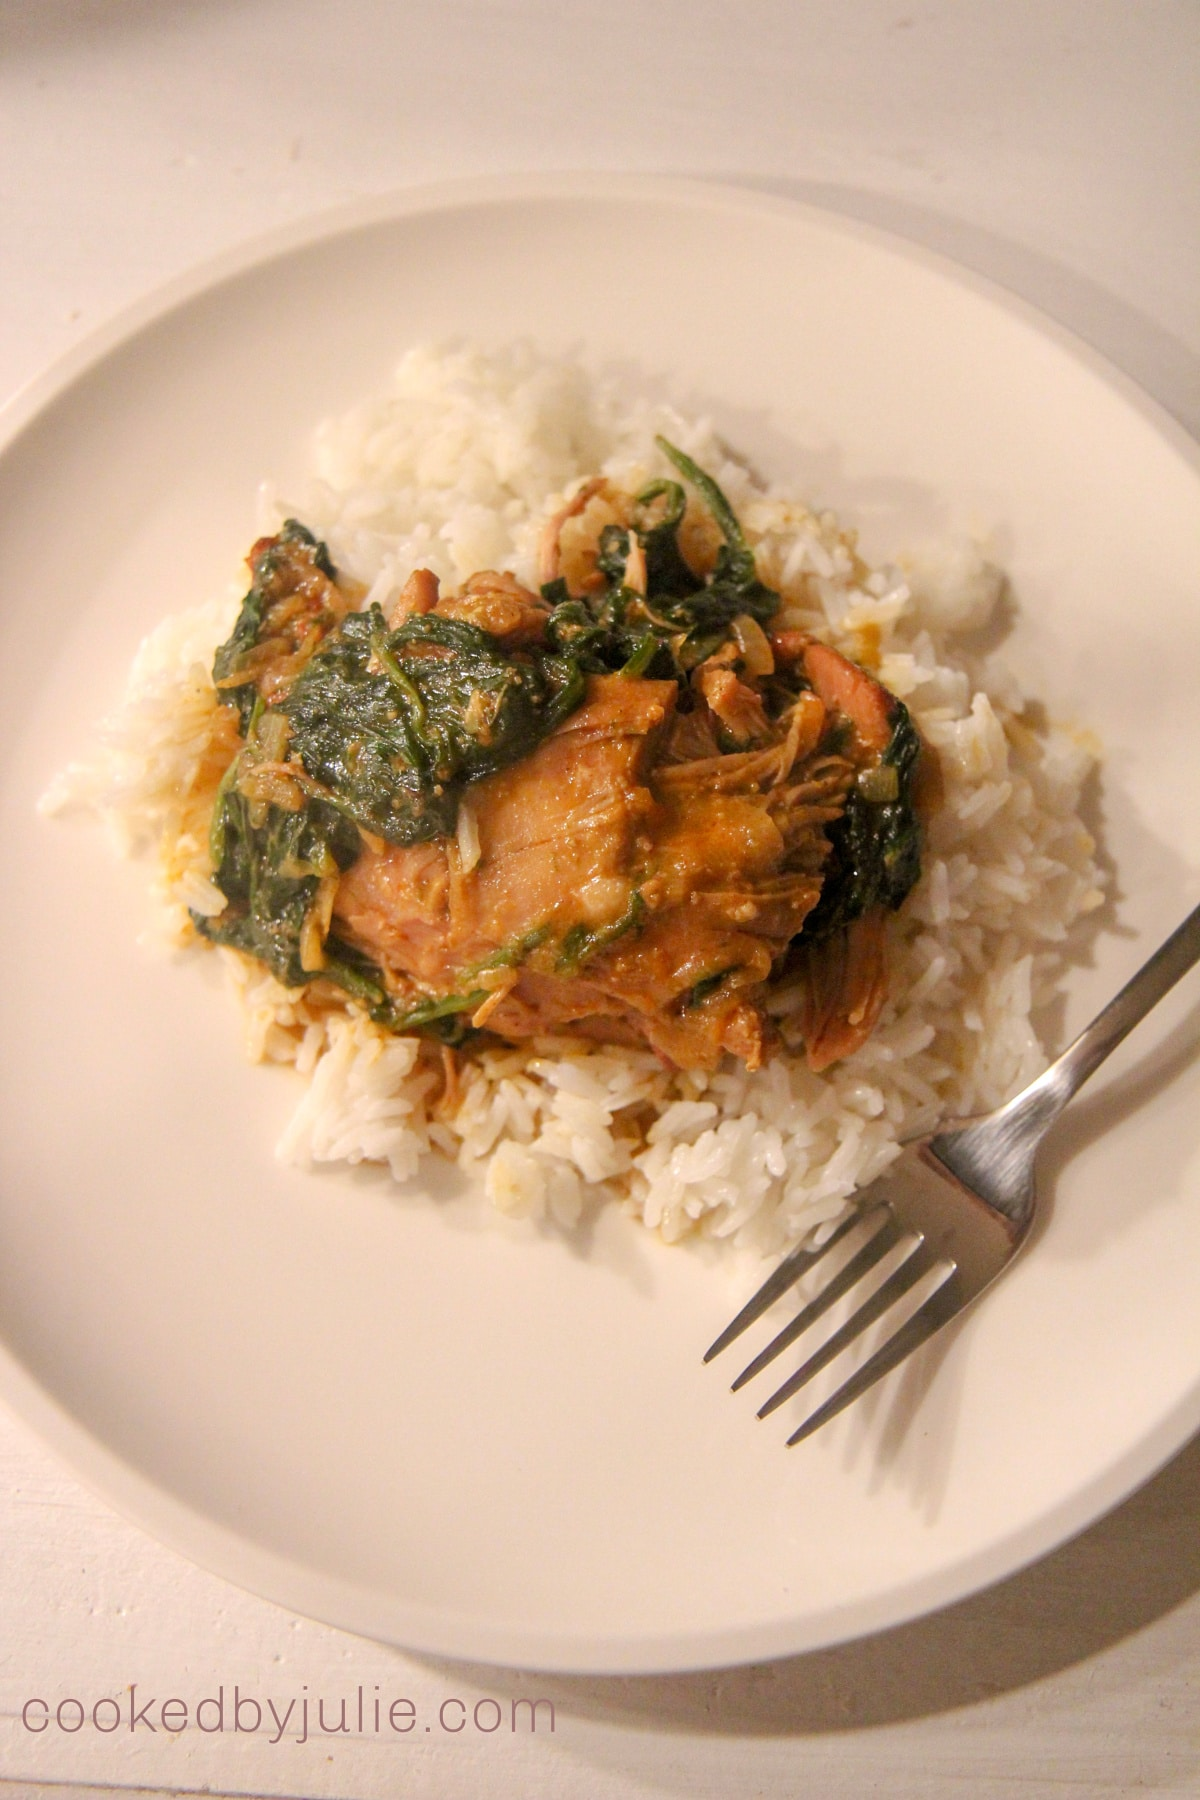 Plate of chicken curry with spinach